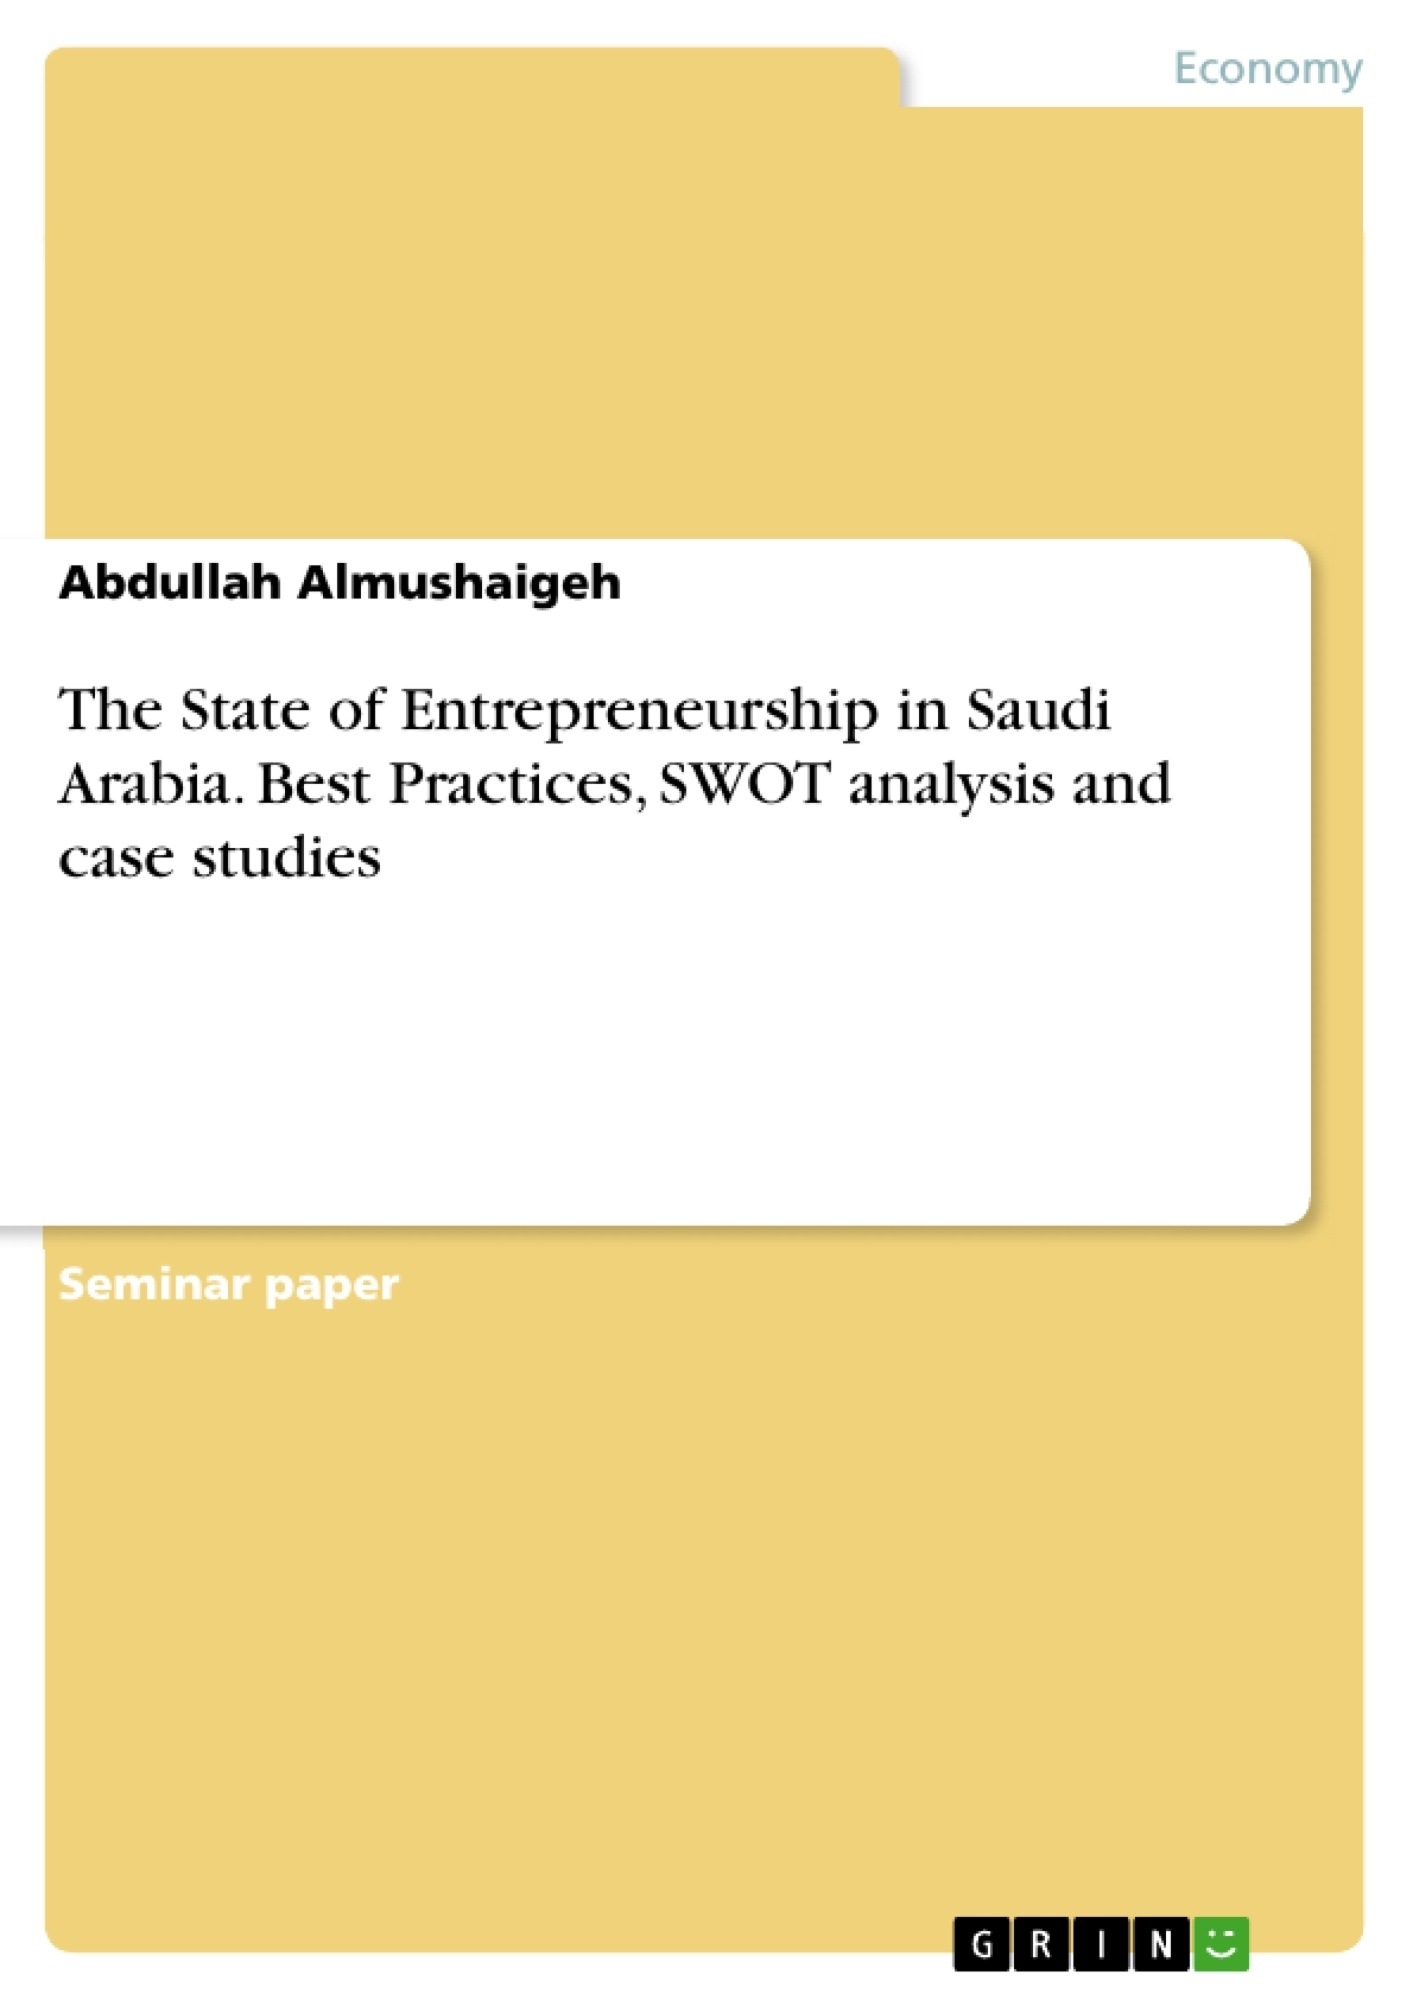 Title: The State of Entrepreneurship in Saudi Arabia. Best Practices, SWOT analysis and case studies